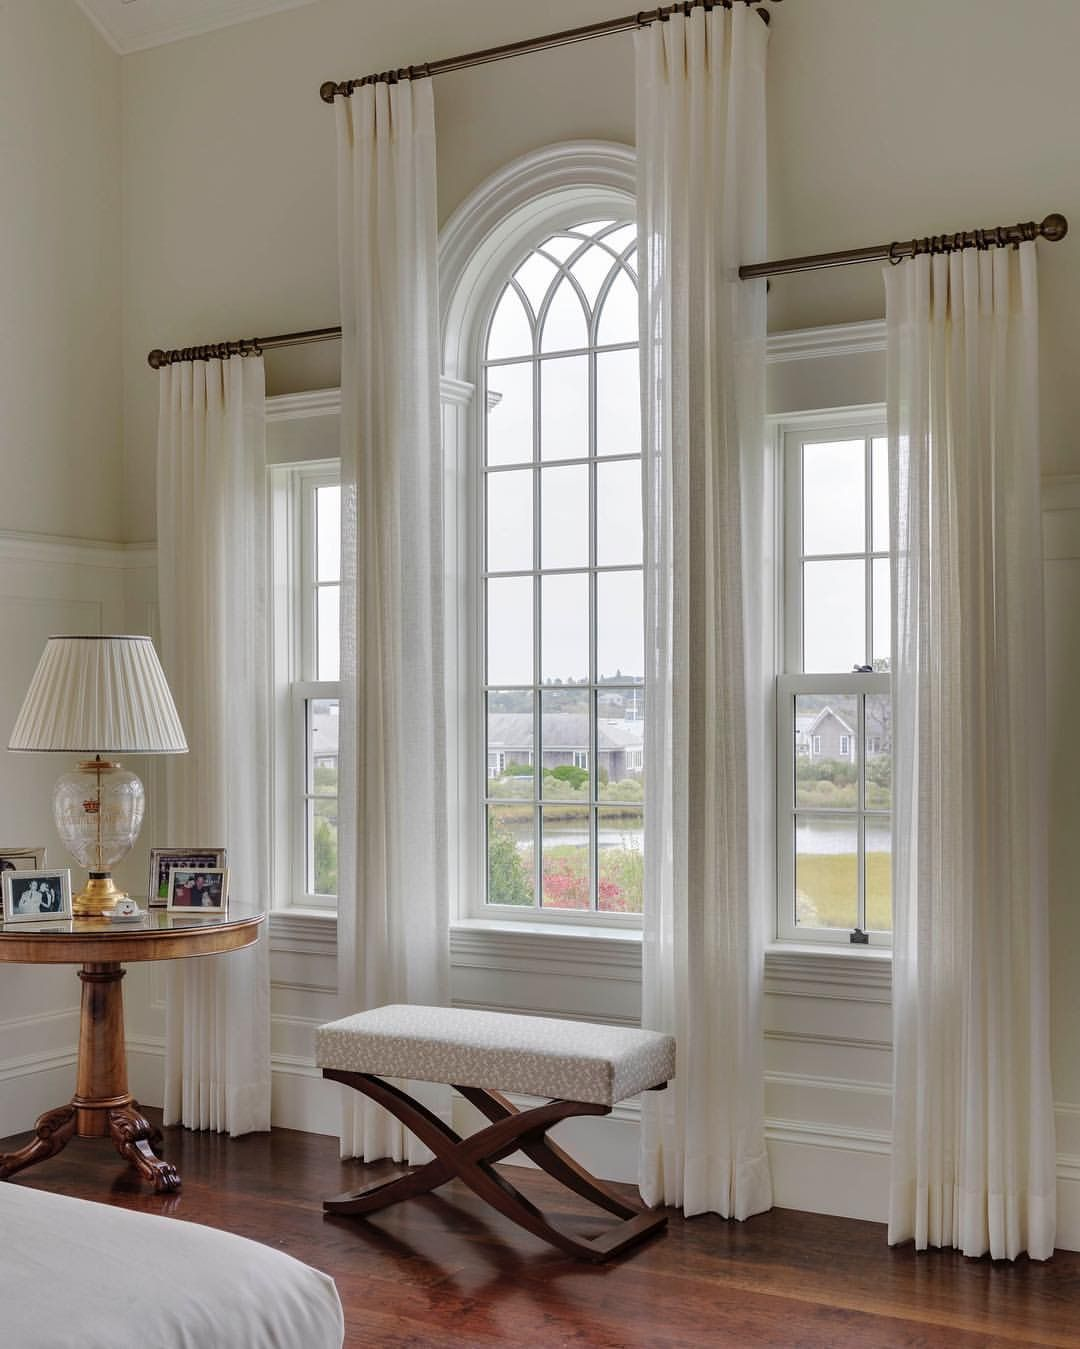 Window coverings arched windows  how to dress odd shaped windows  windows in   pinterest